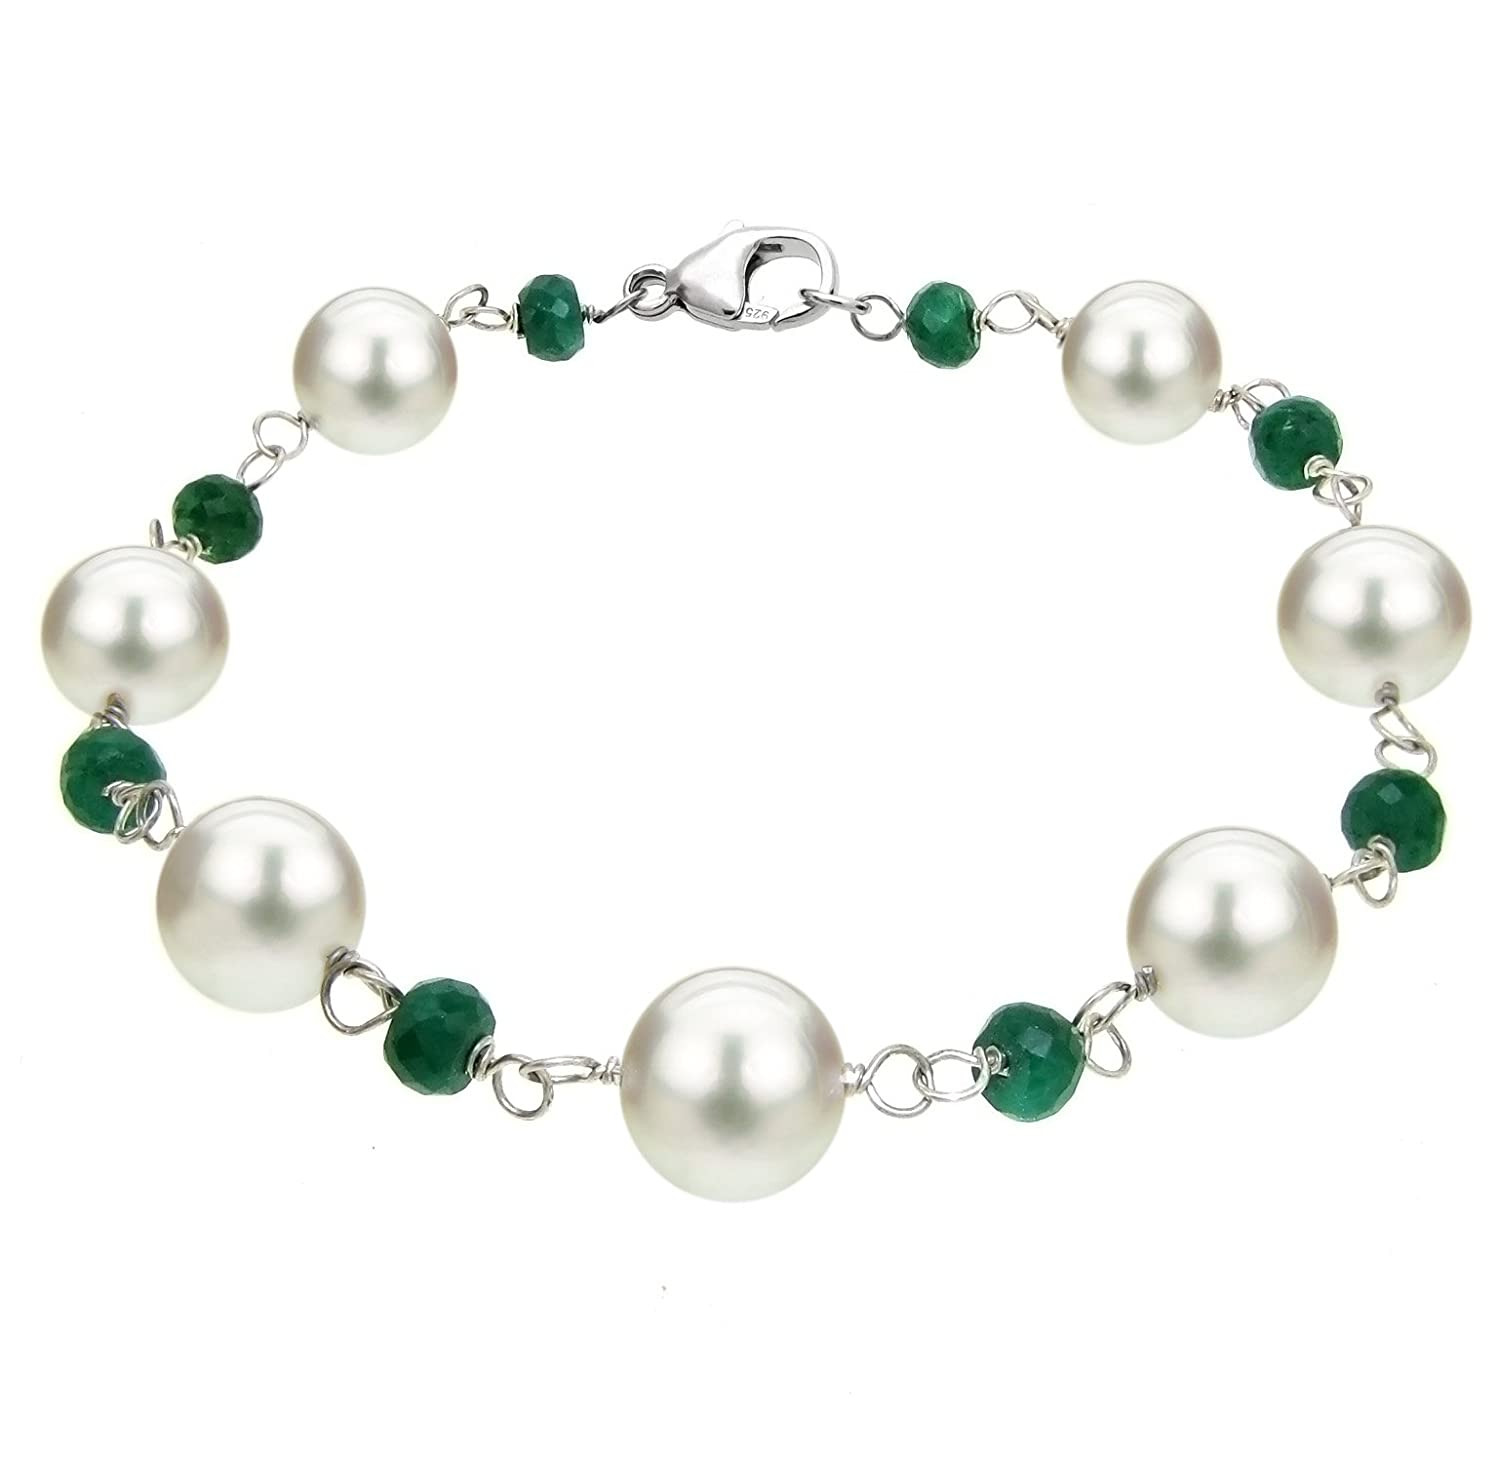 Sterling Silver 8-8.5mm White Freshwater Cultured Pearl 4mm Simulated Green Emerald Bracelet, 7.5""